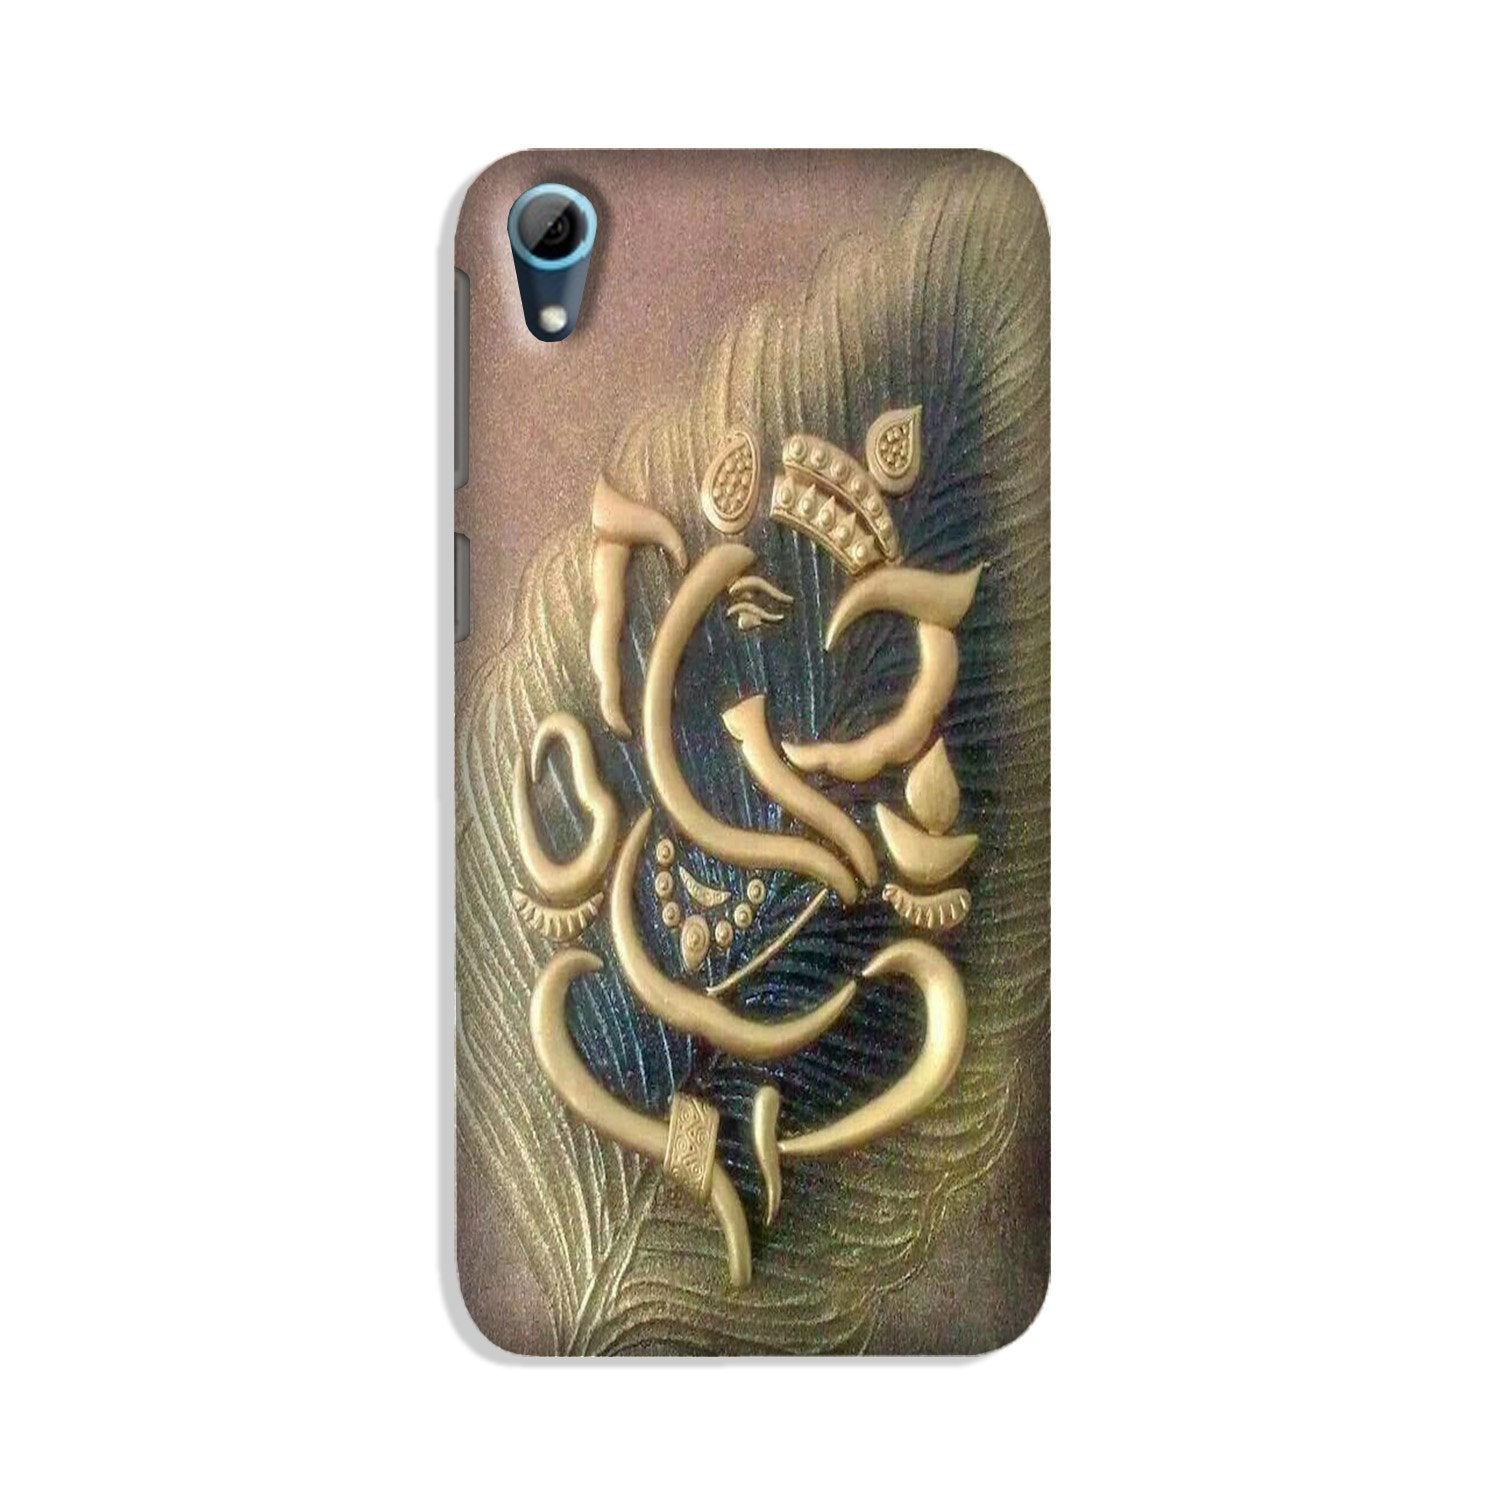 Lord Ganesha Case for HTC Desire 826